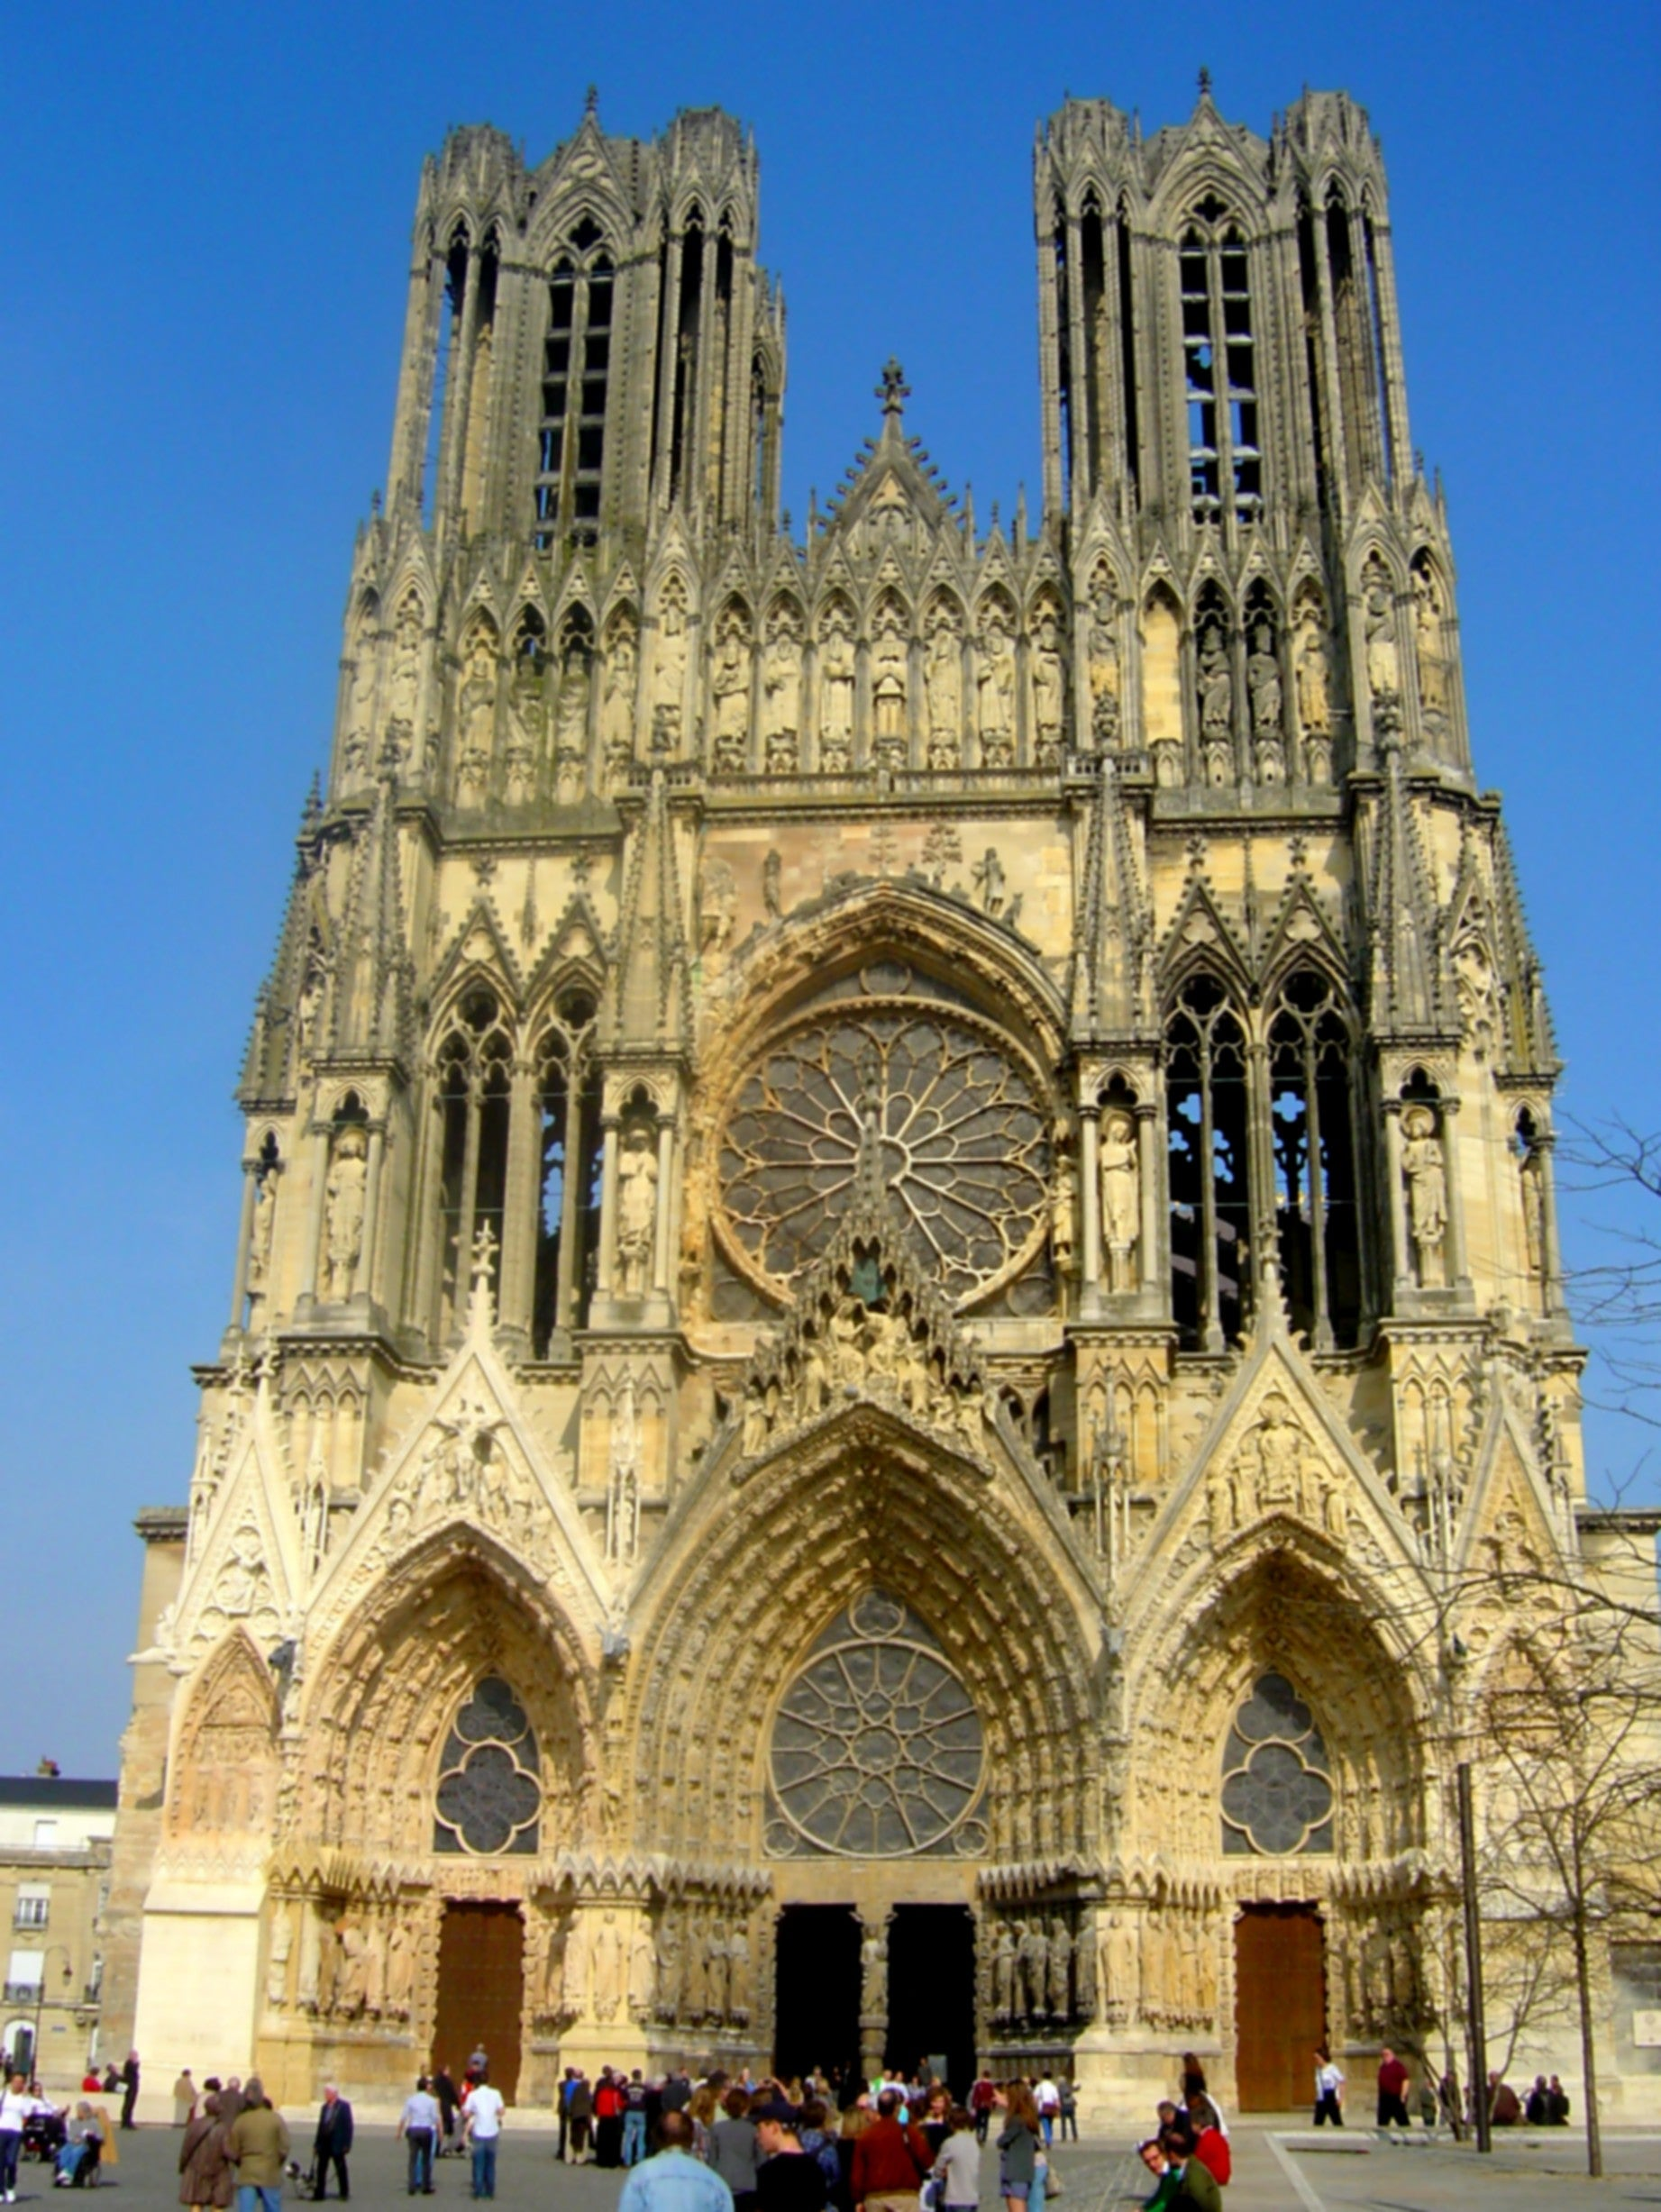 Plaza en Catedral de Reims